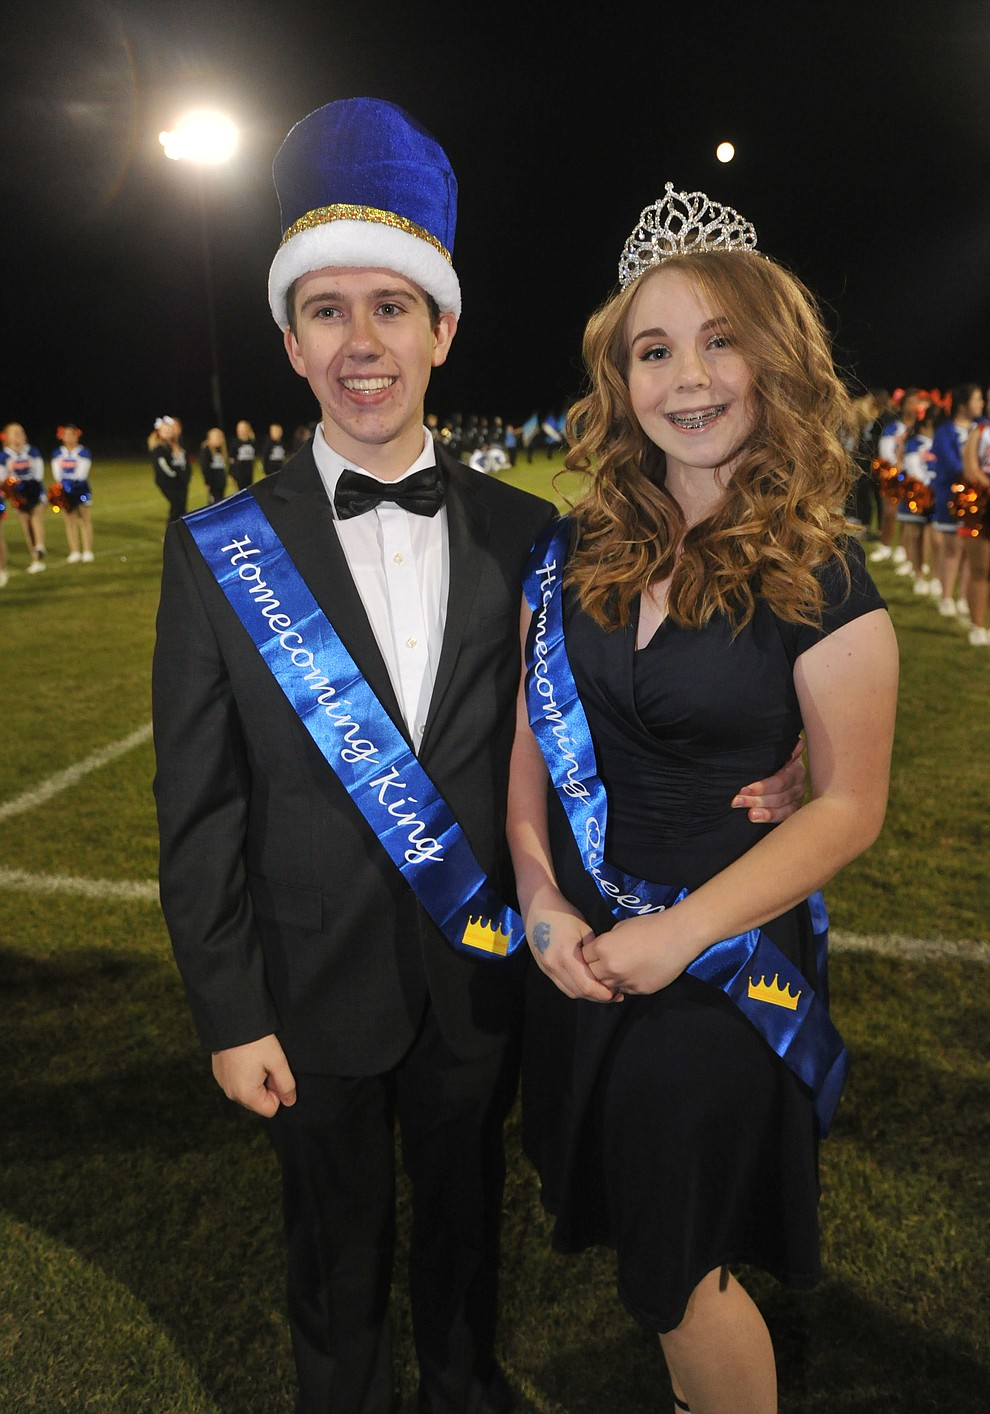 Chino Valley High School homecoming King Trevor Kuntze and Queen Paige Achten were crowned during halftime of the football game against Kingman Friday, October 6. (Les Stukenberg/Courier)